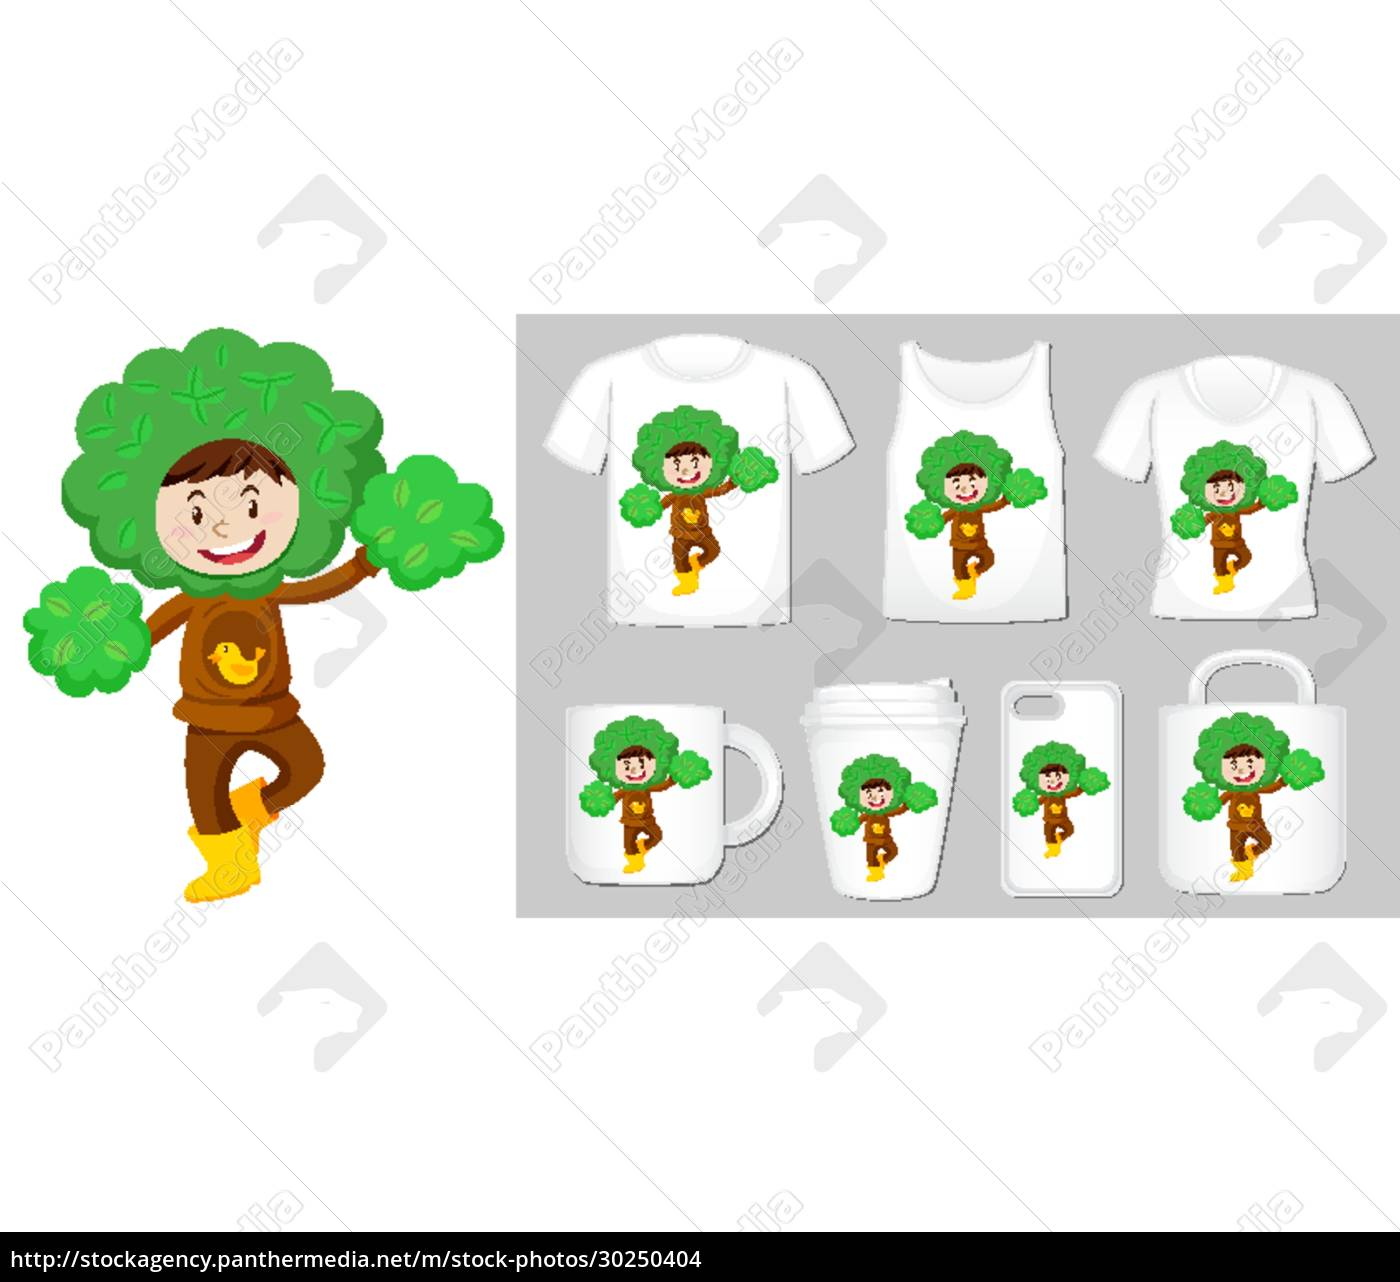 graphic, of, kid, in, tree, costume - 30250404